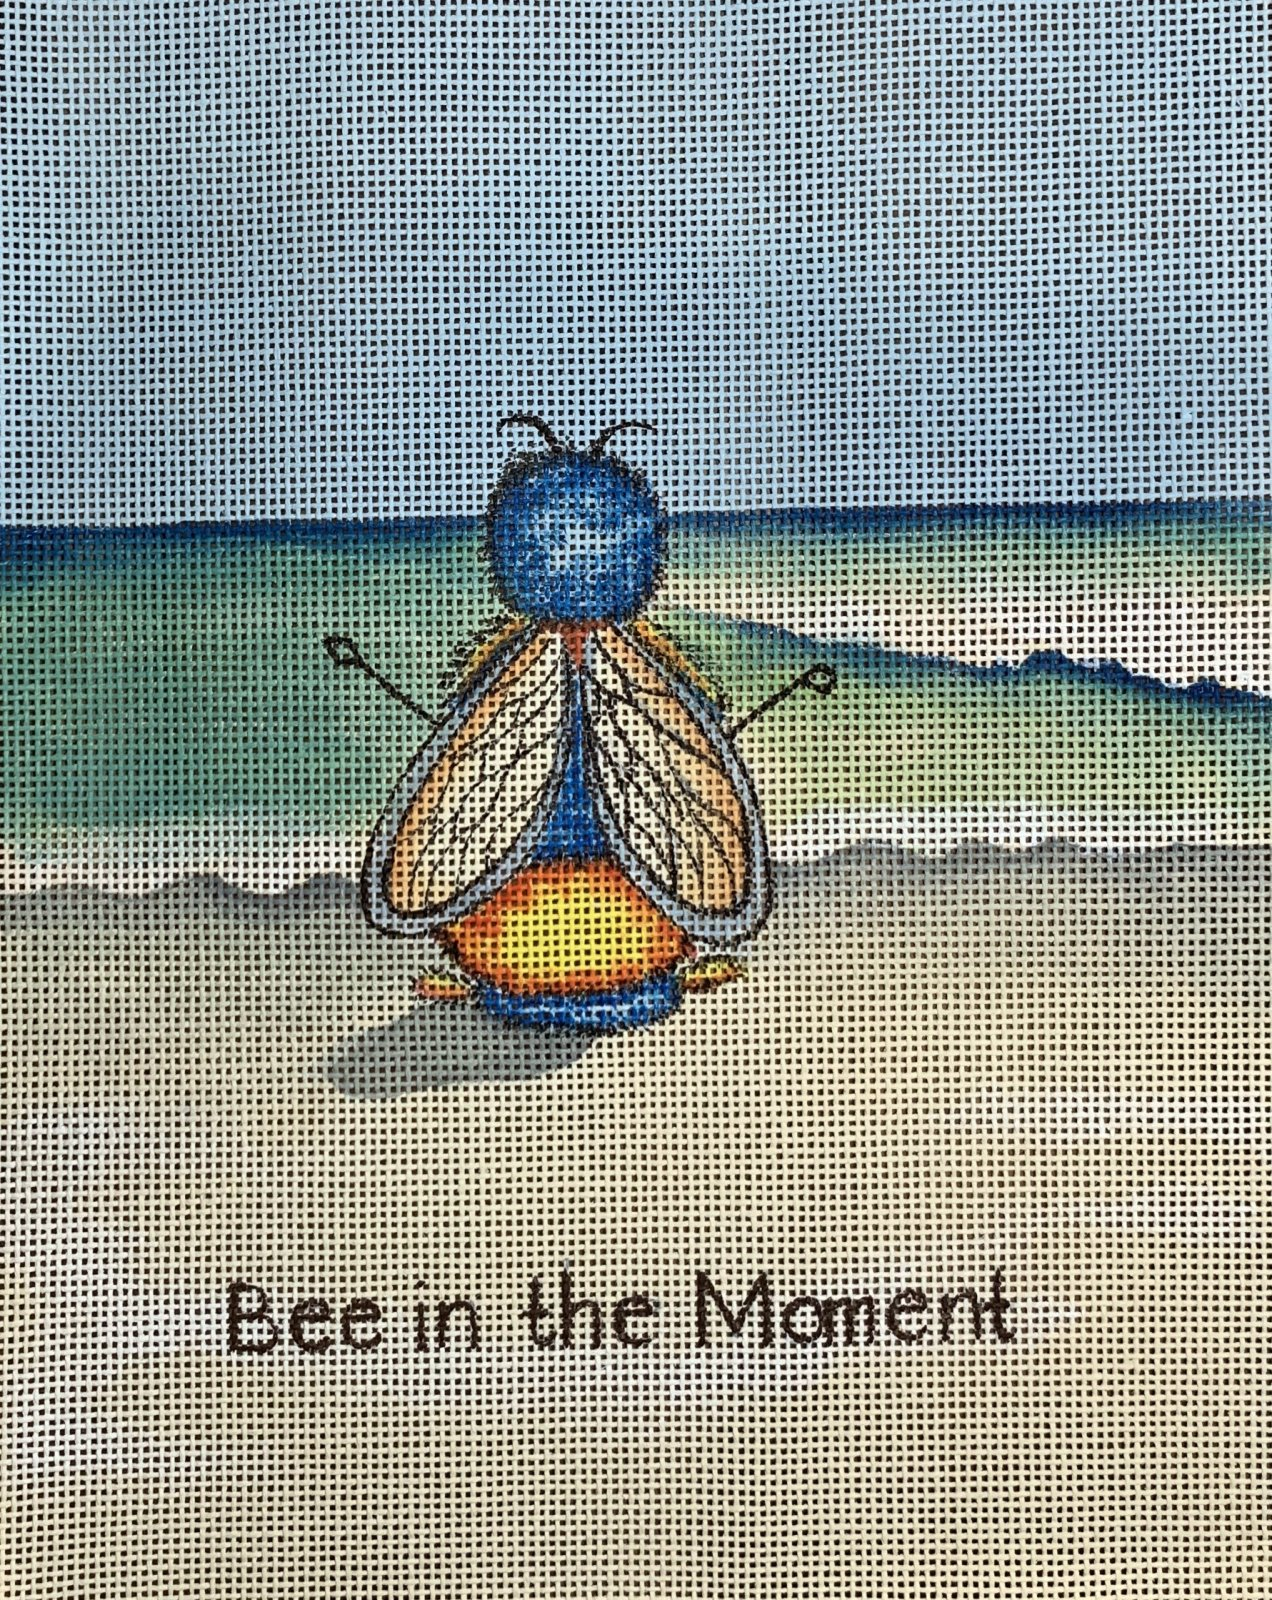 Bee in the Moment